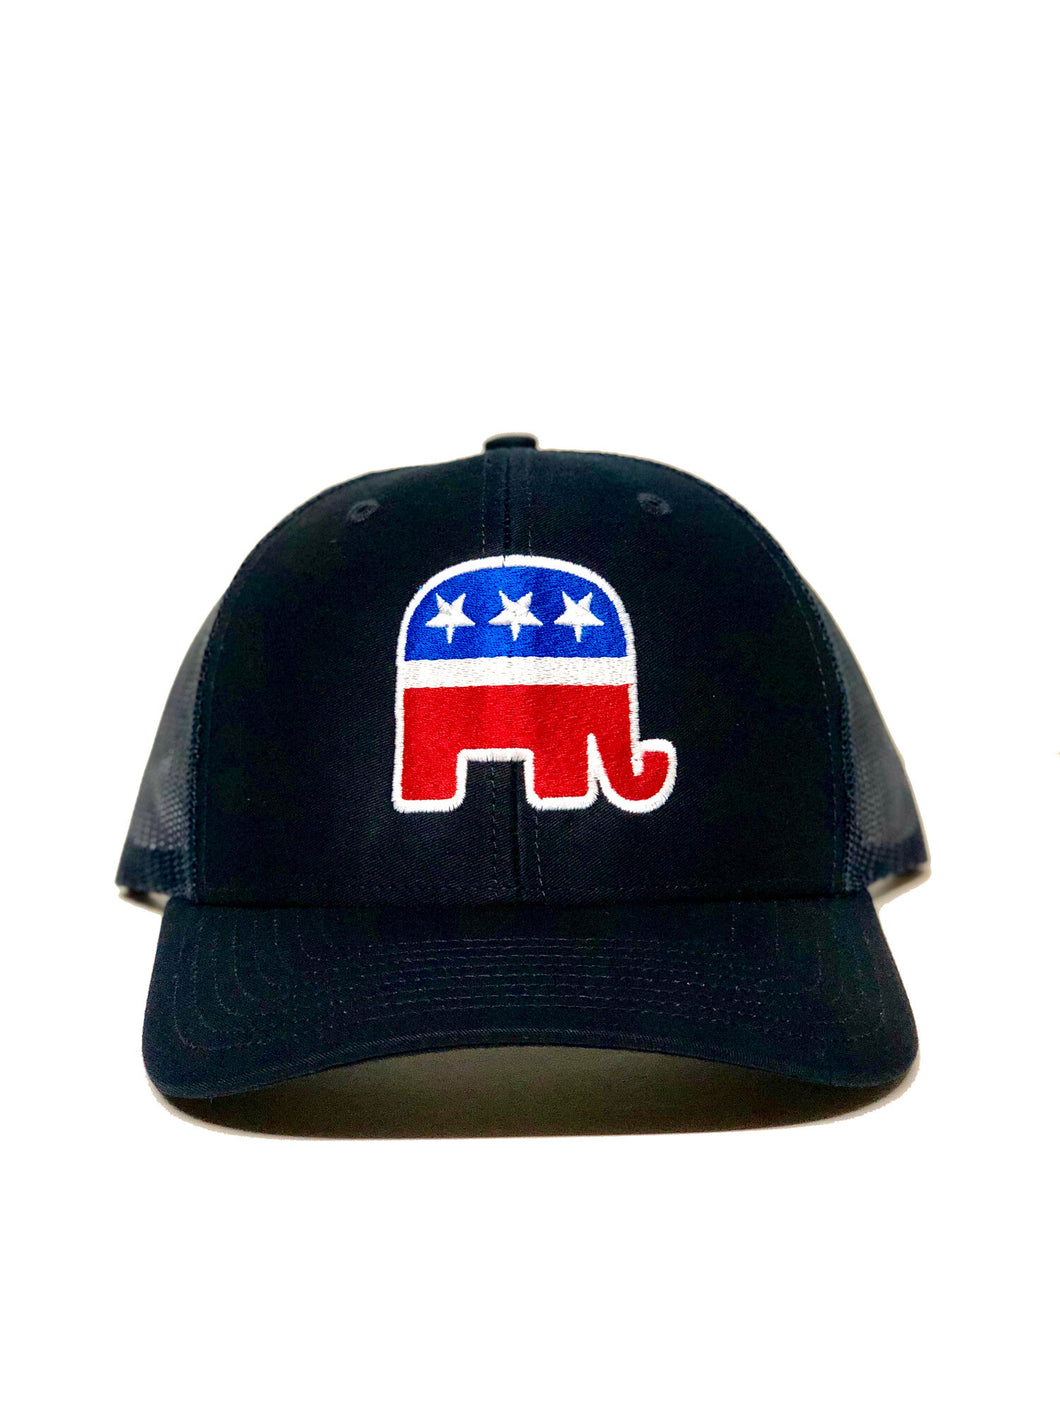 Republican Elephant Trucker Hat Solid Navy